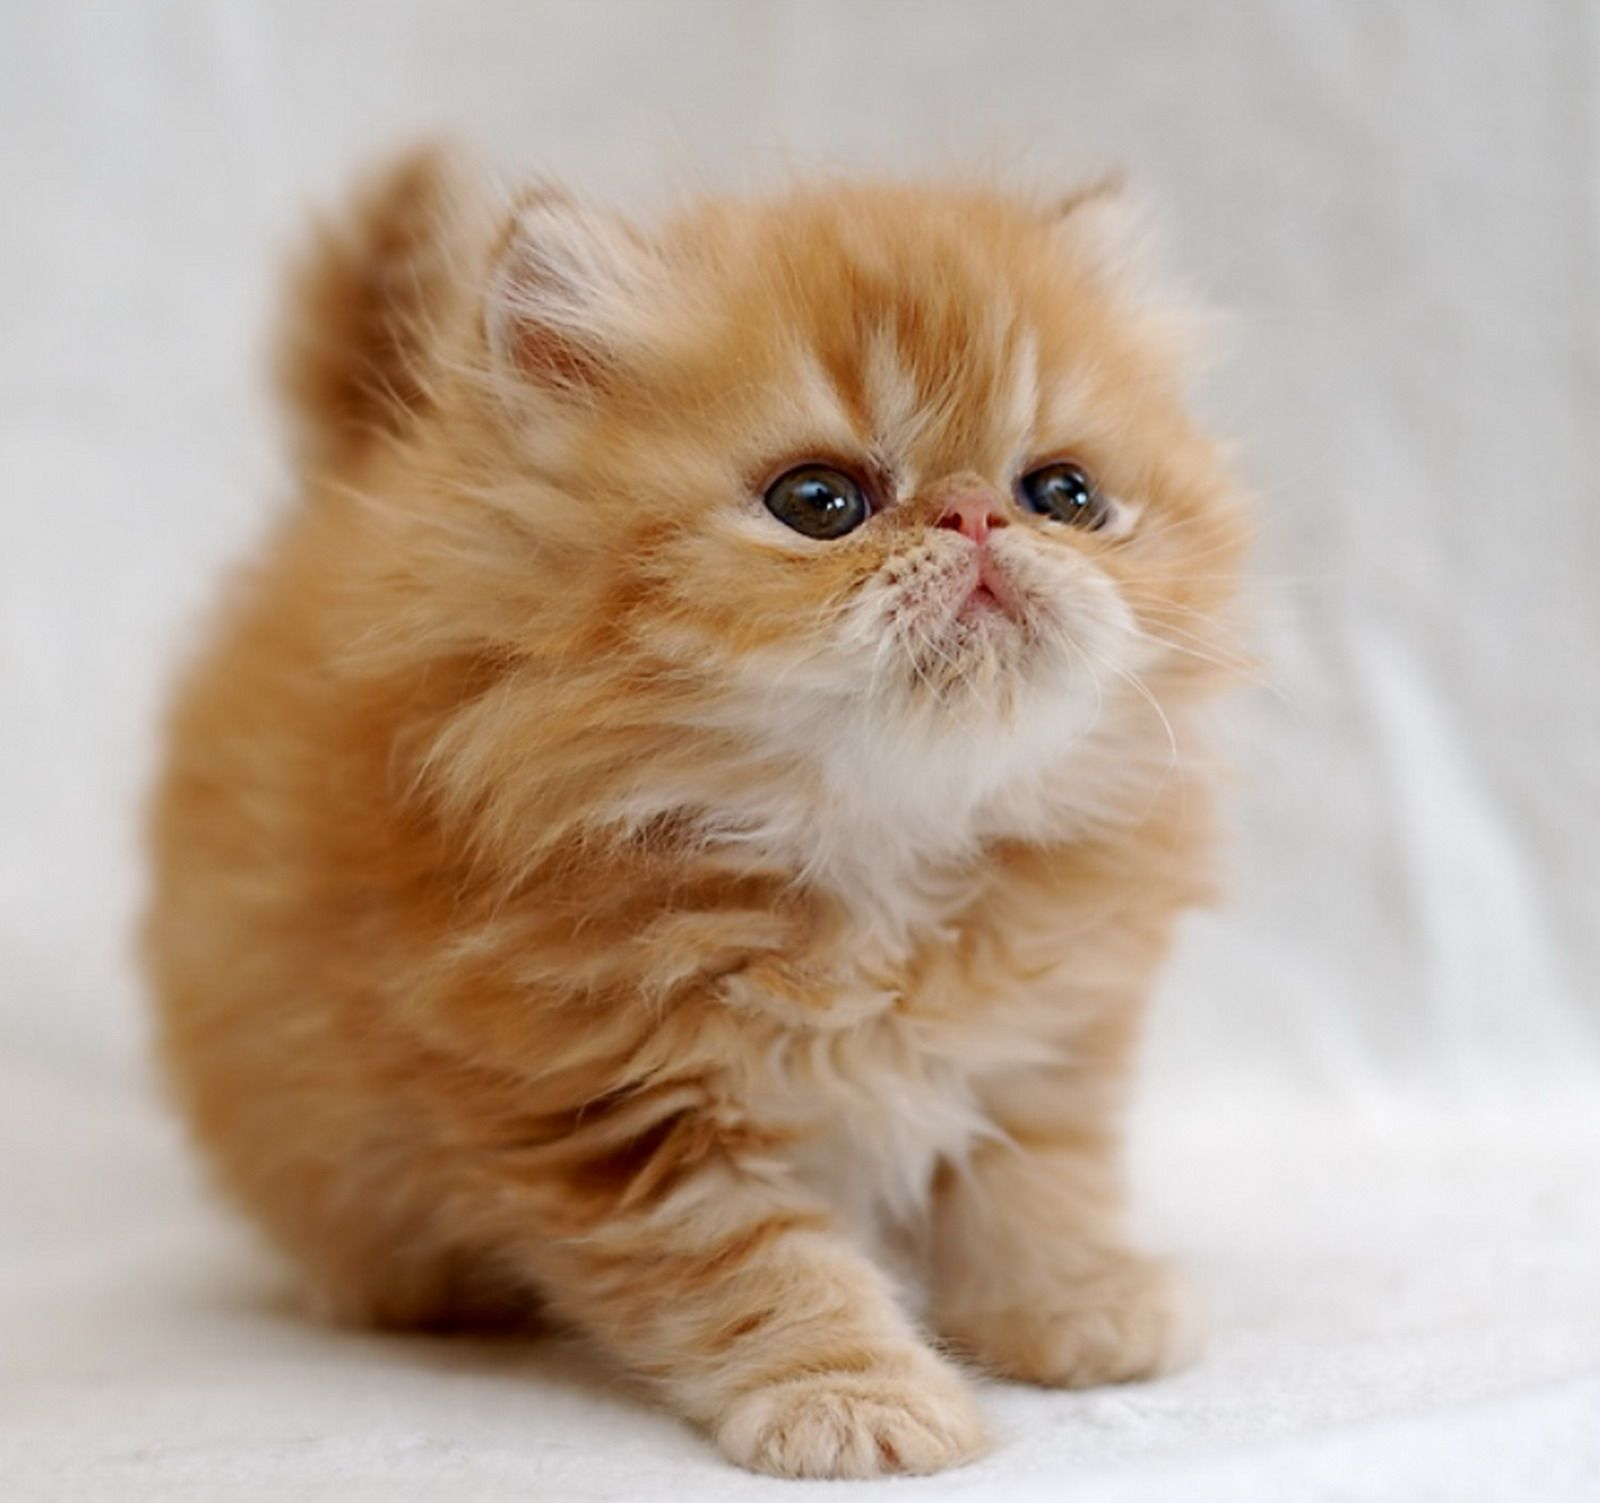 Omg I Don T Care If I M Allegeric I Want One Of These And I Want One Now Munchkin Kittens Cuddly Animals Fluffy Cat Kittens Cutest